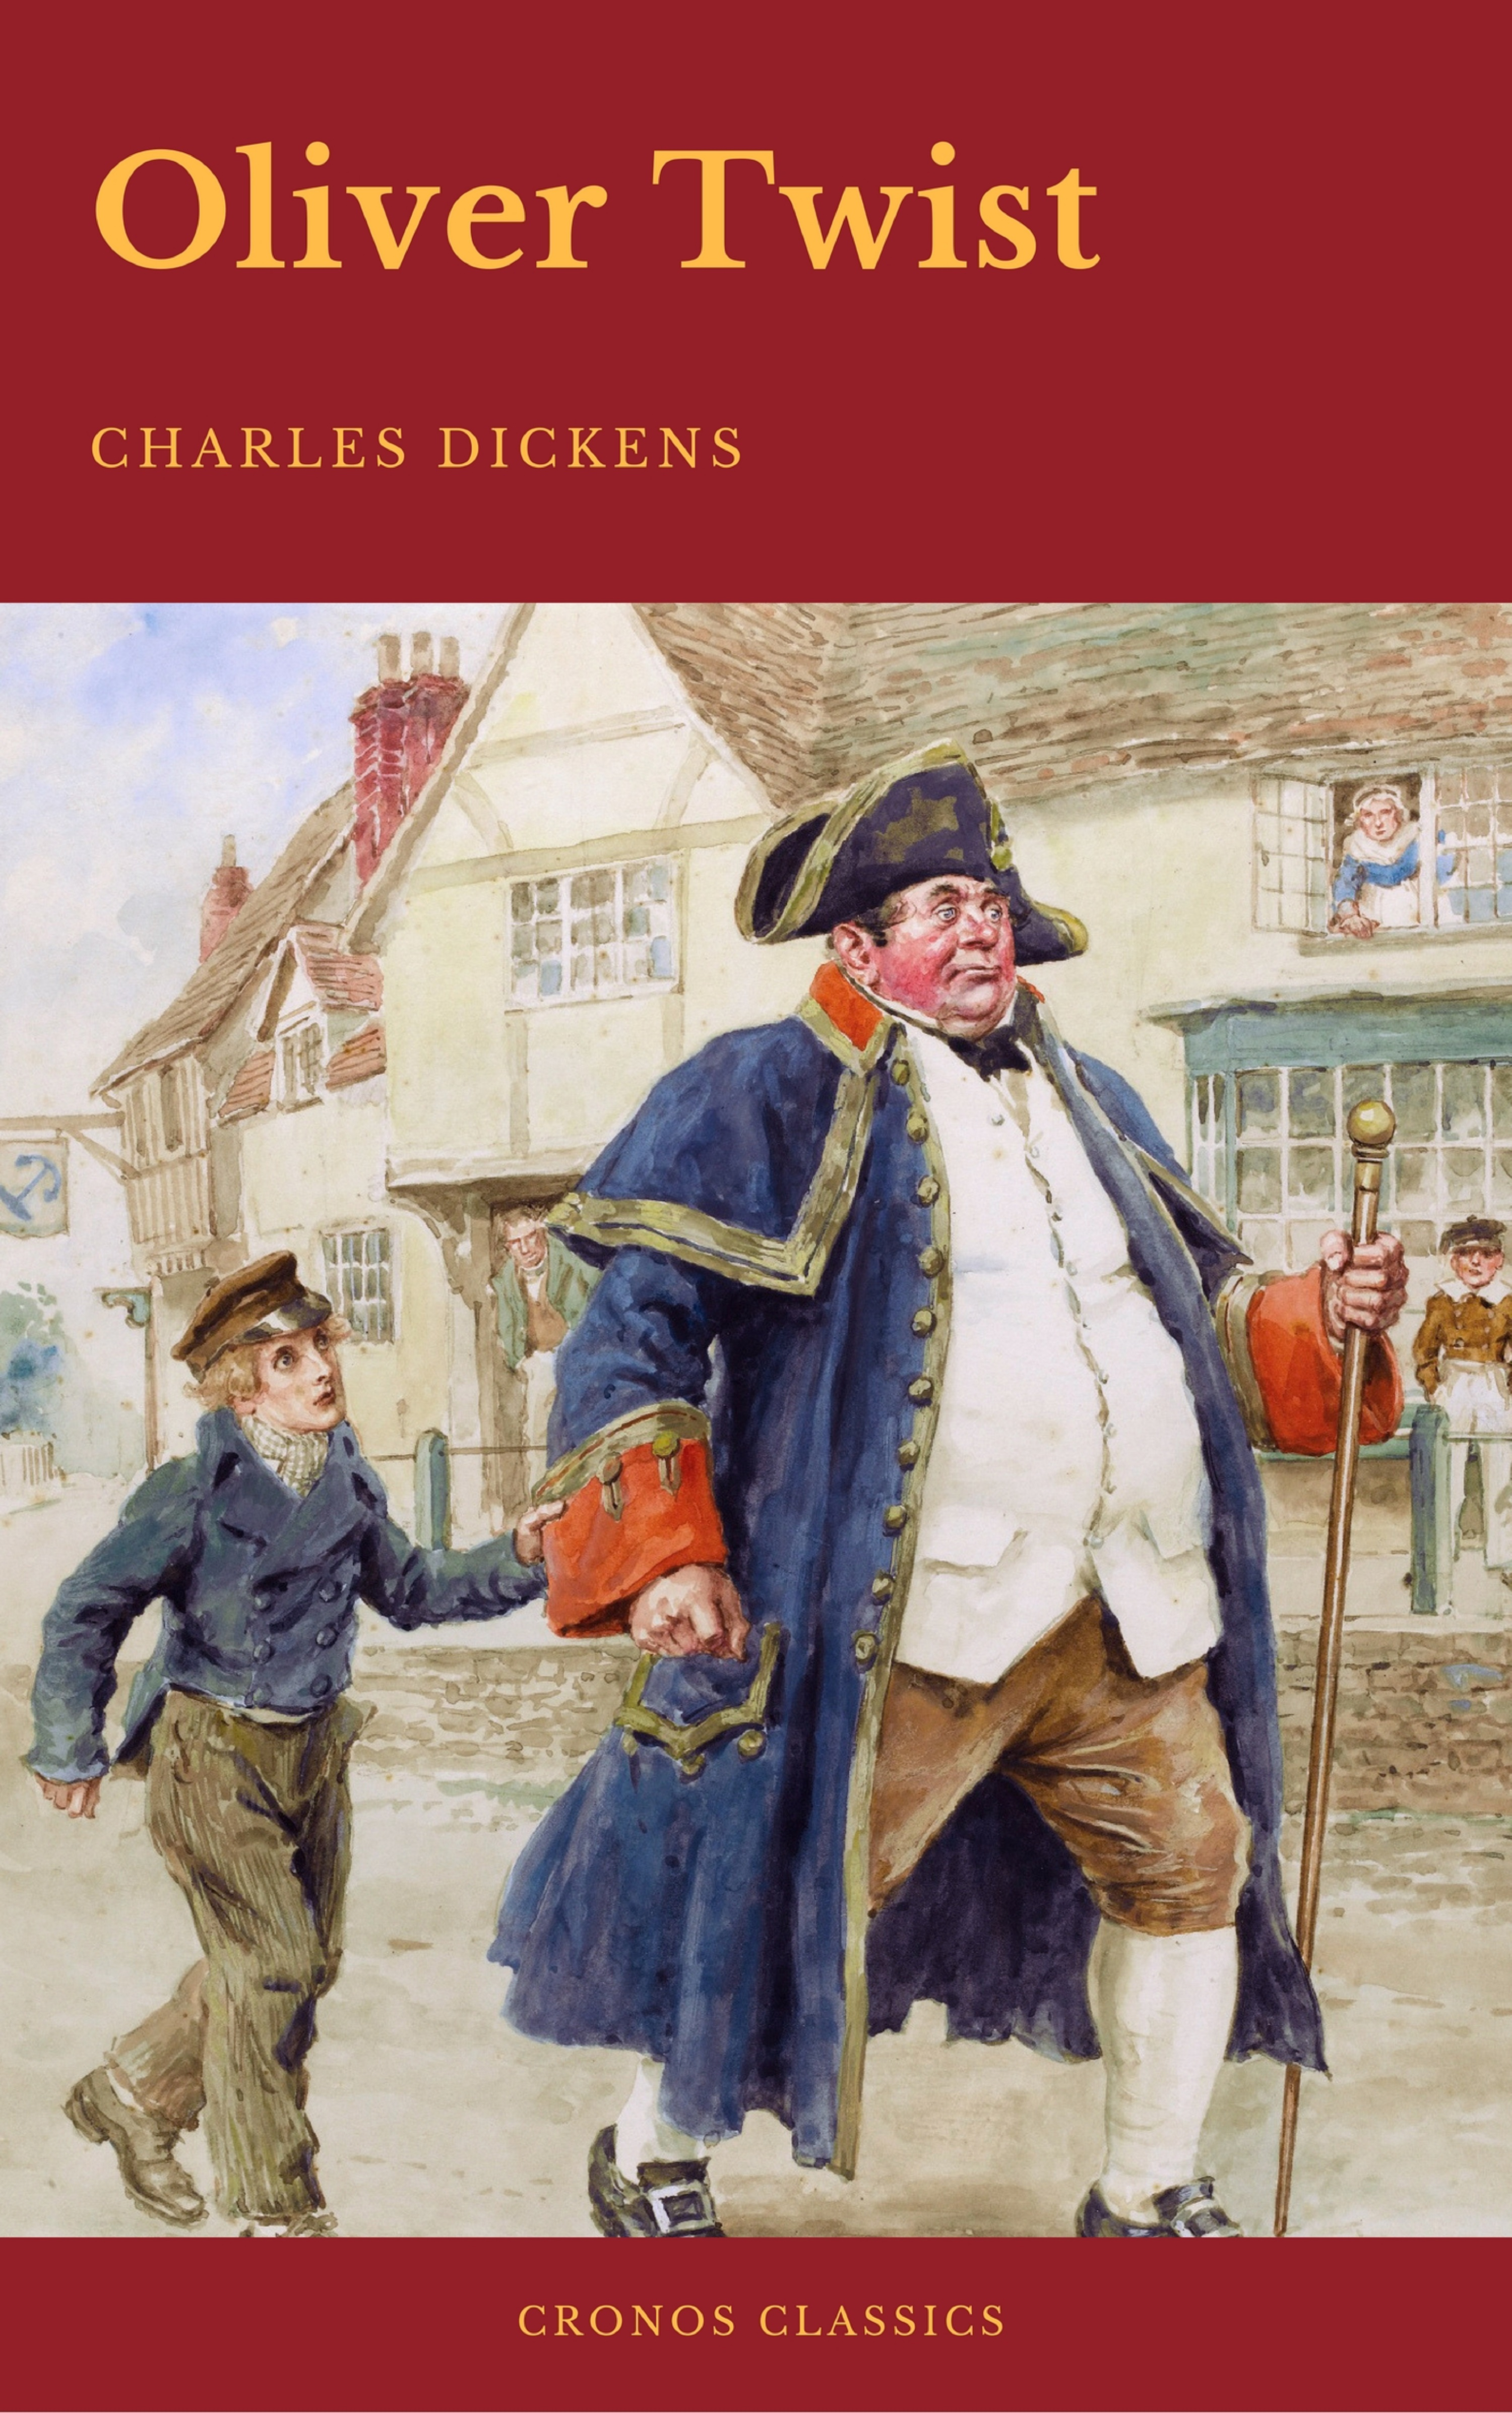 Charles Dickens Oliver Twist (Cronos Classics) charles dickens barnaby rudge cronos classics